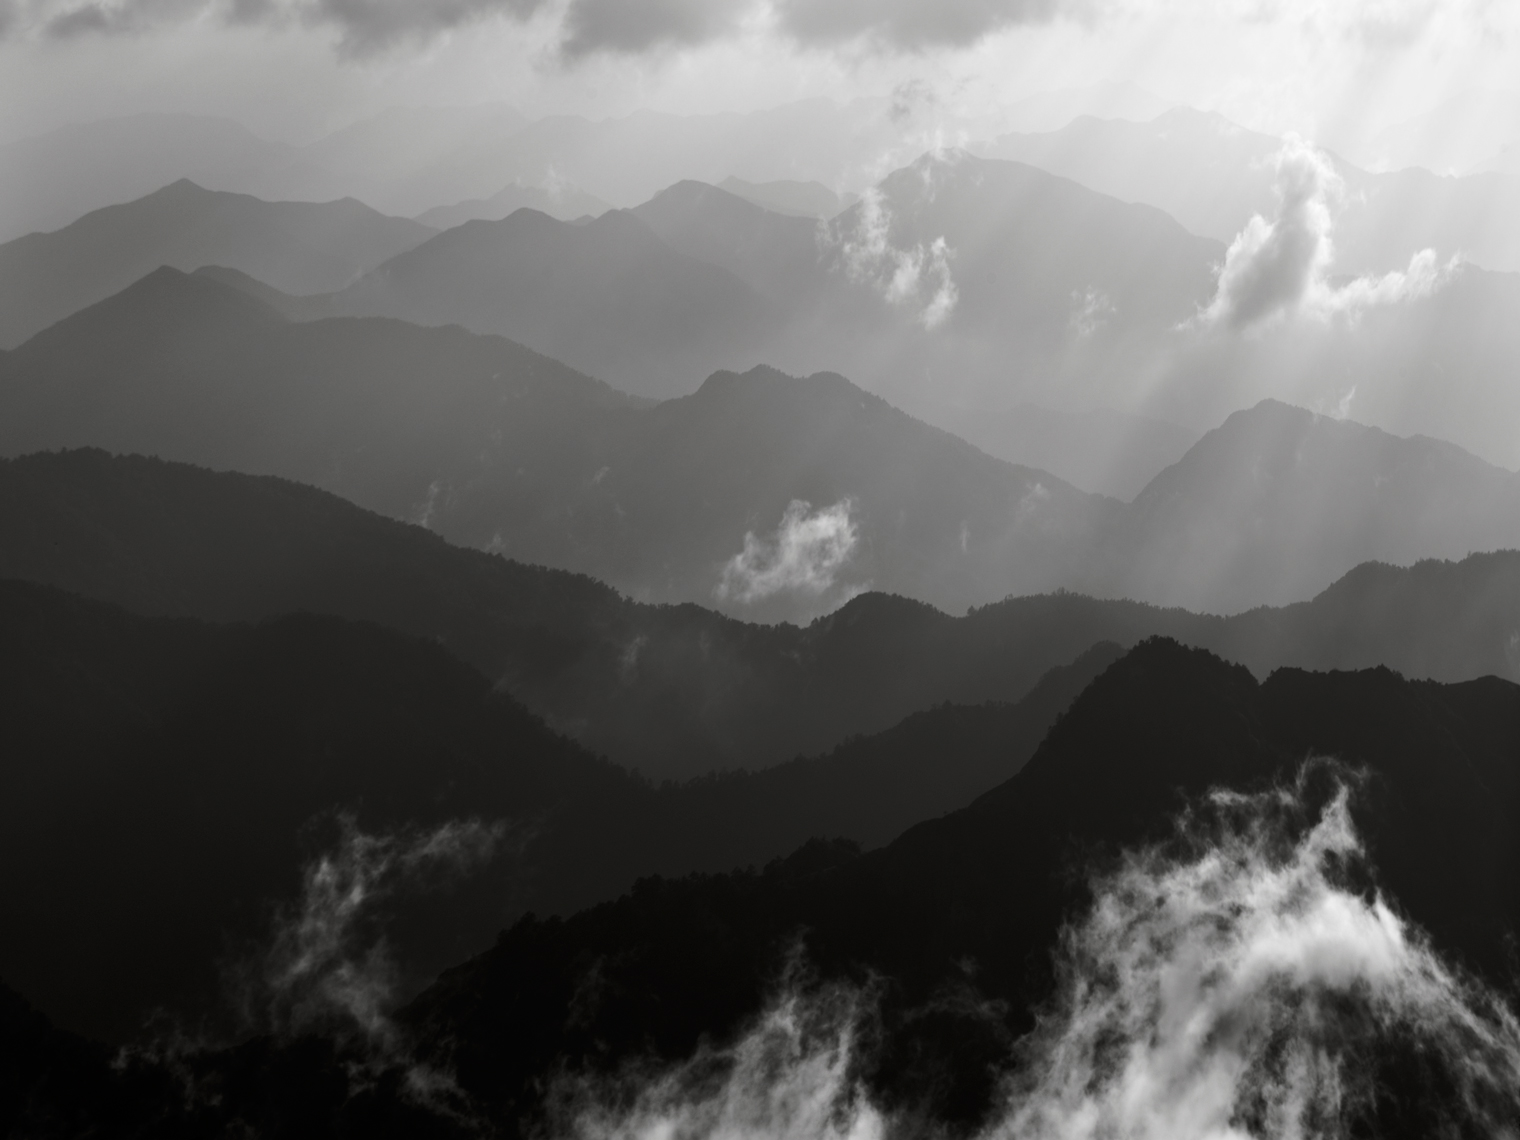 Jon Wyatt Photography - ridges, peaks and clouds in the Huangshan mountains, Anhui Province, China